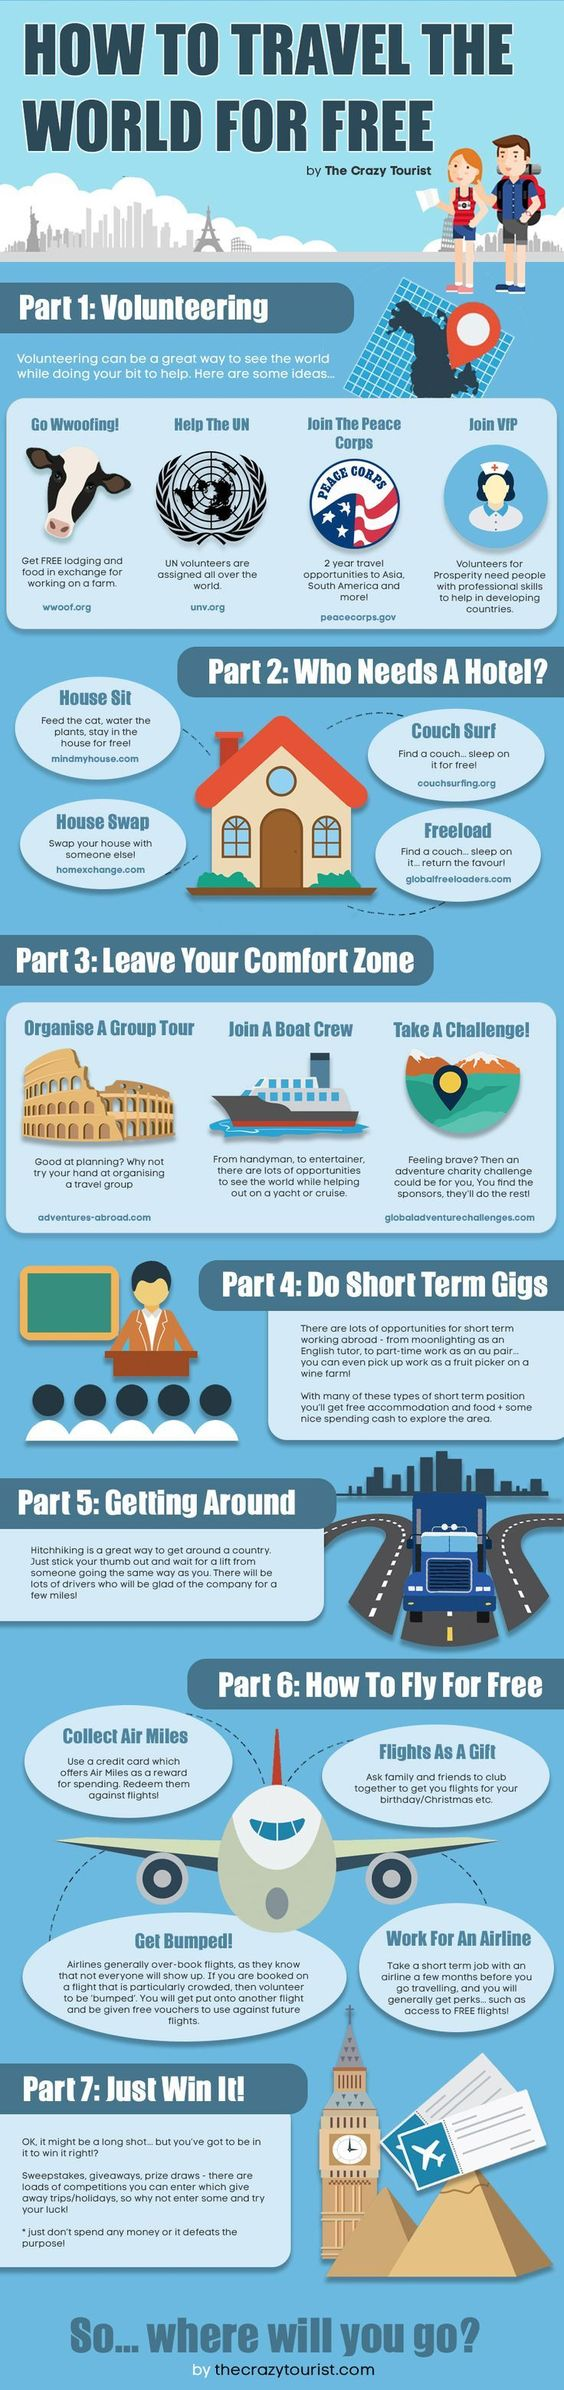 How to TRAVEL the World for FREE - this suggests ways in which you can eliminate certain costs from your travels )for example, free accommodation by house sitting or free food by Wwoofing ) . Of course, it's probably impossible to make a trip completely free, but here are some ideas to at least cut the costs down. Infographic.: